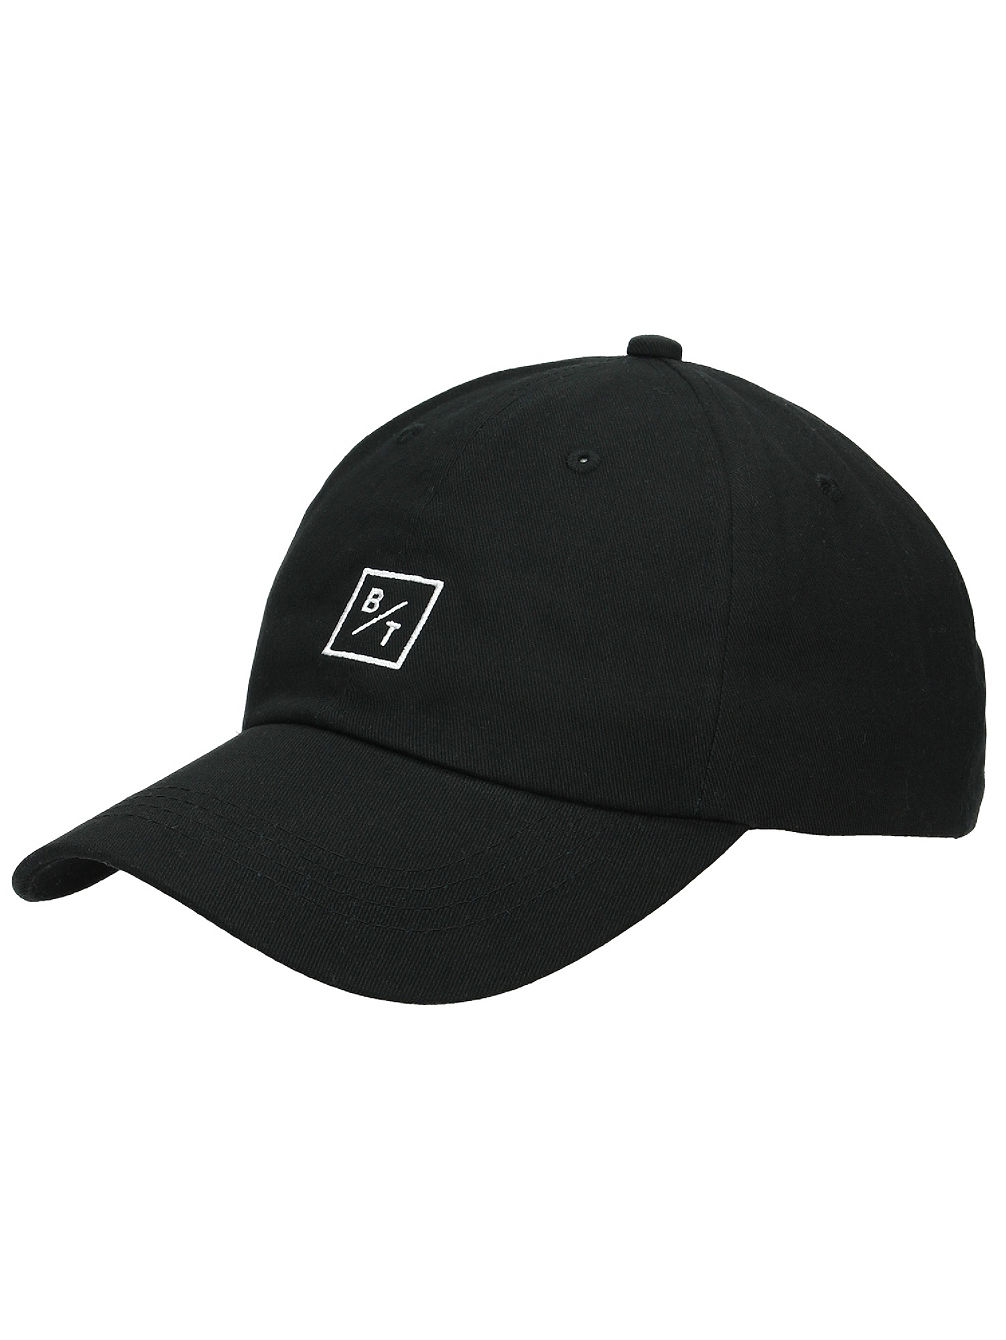 Icon Dad Hat Cap